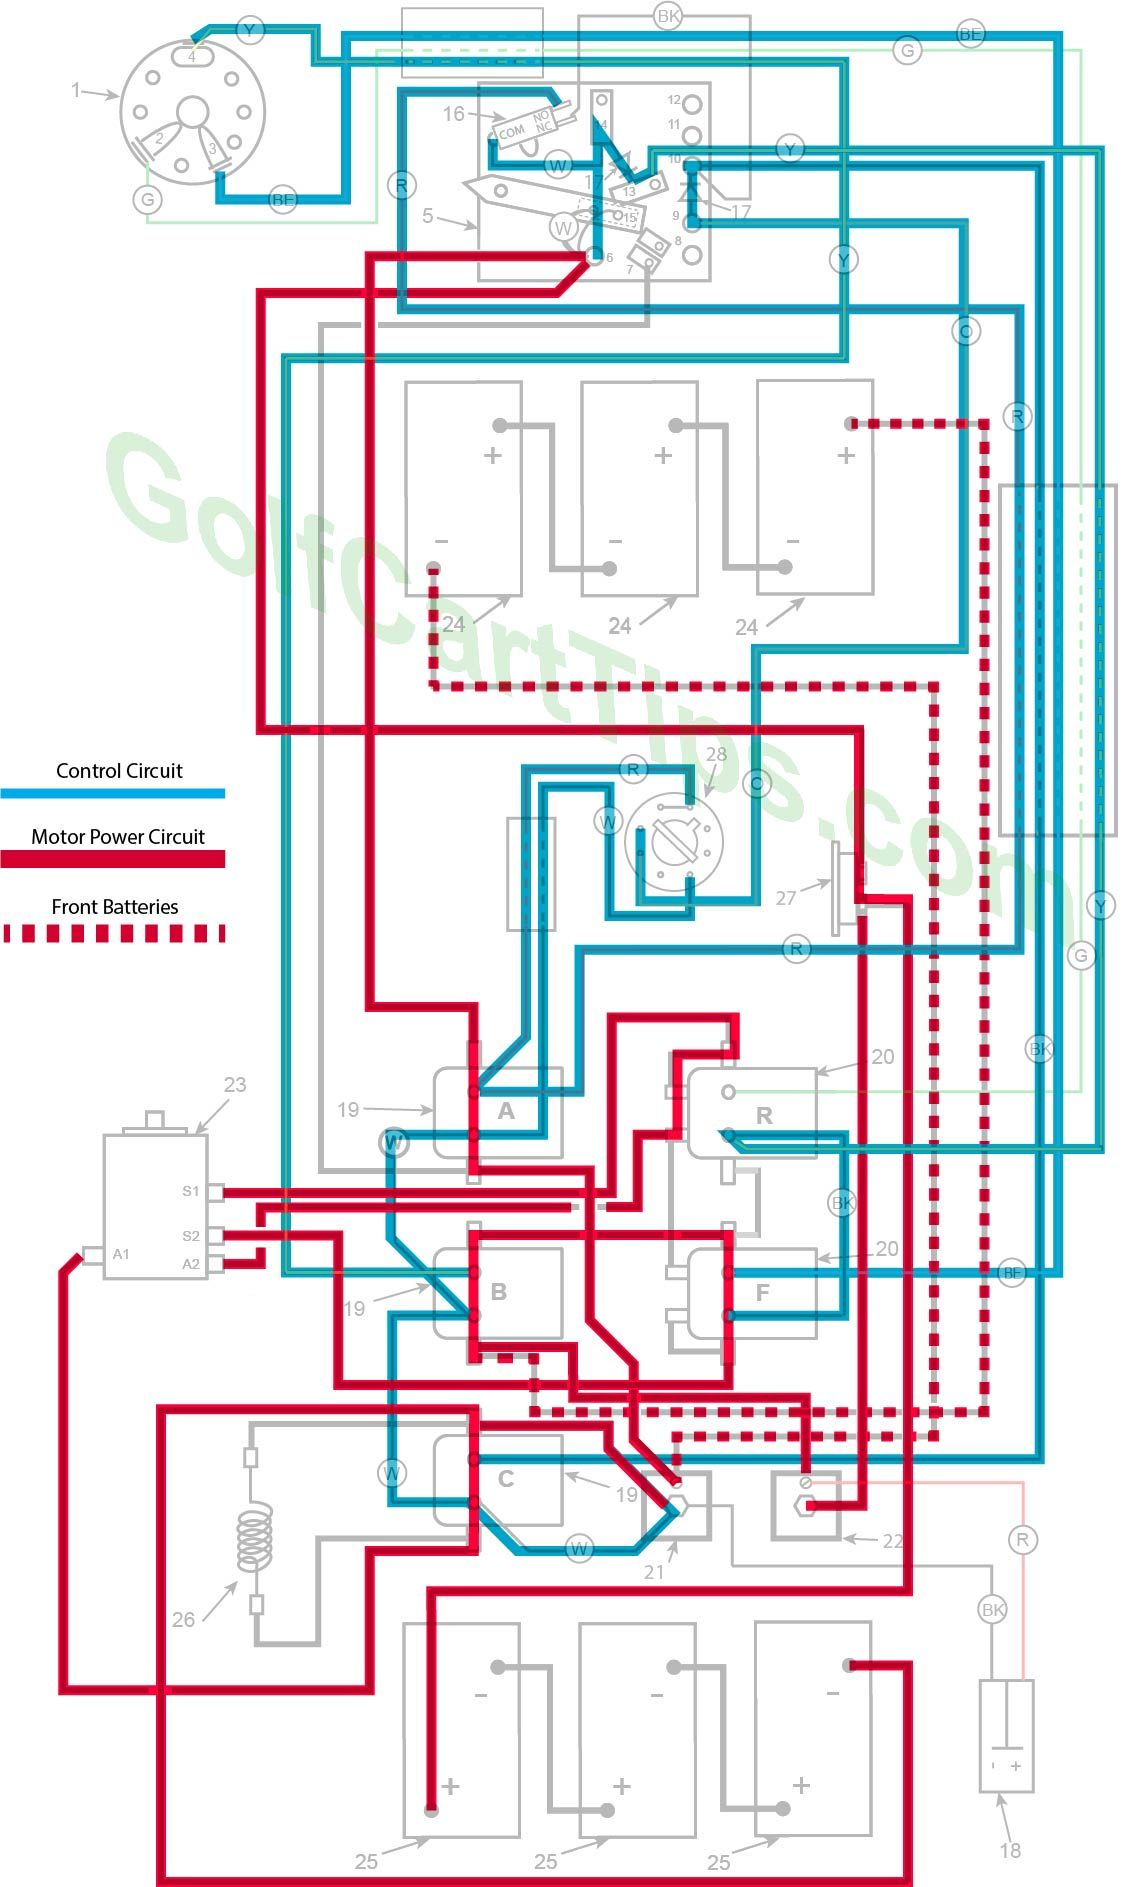 harley davidson golf cart wiring diagrams 1971 model de fourth speed [ 1123 x 1887 Pixel ]